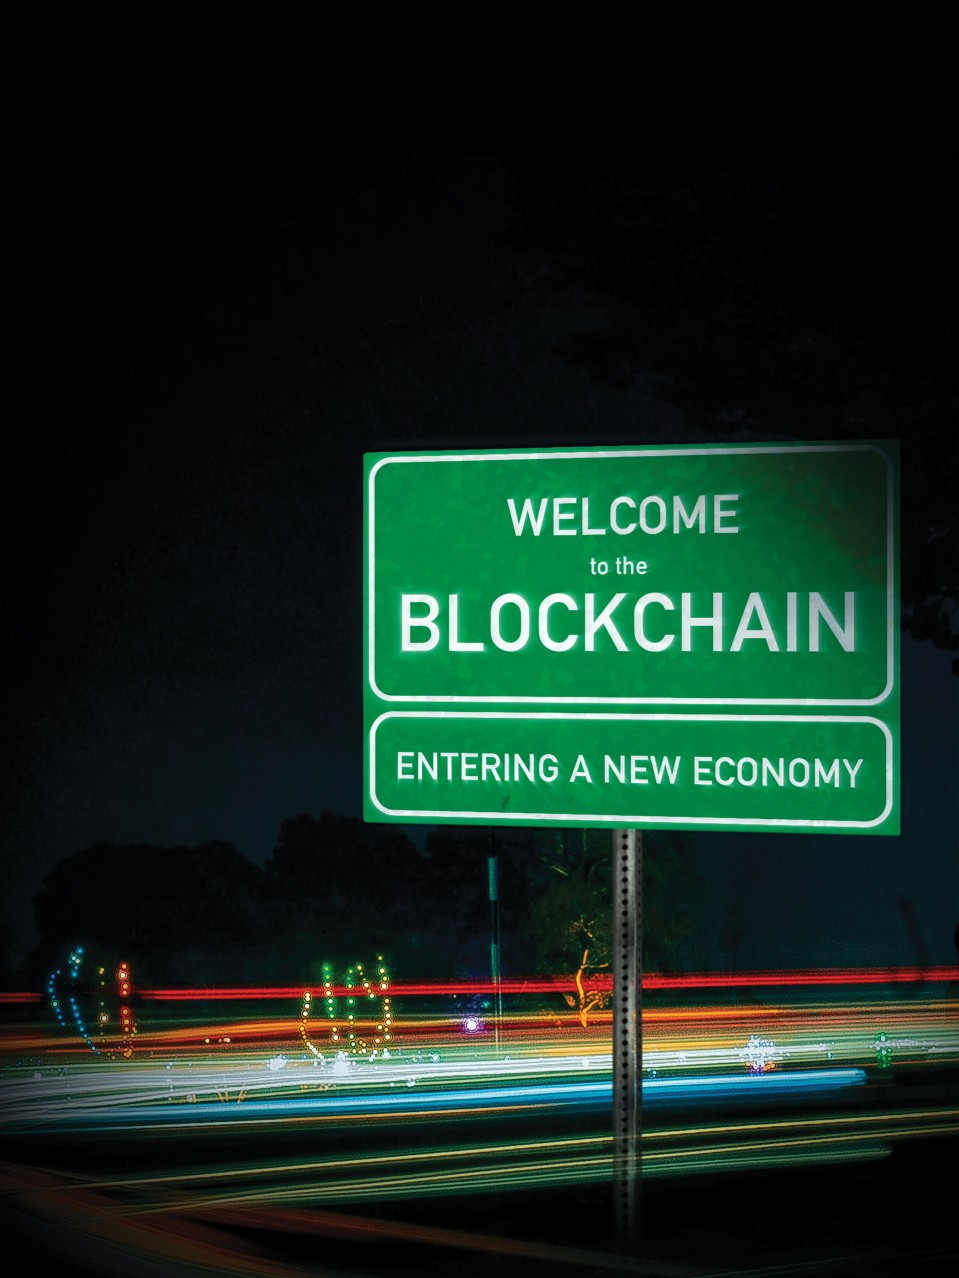 In blockchain we trust - MIT Technology Review